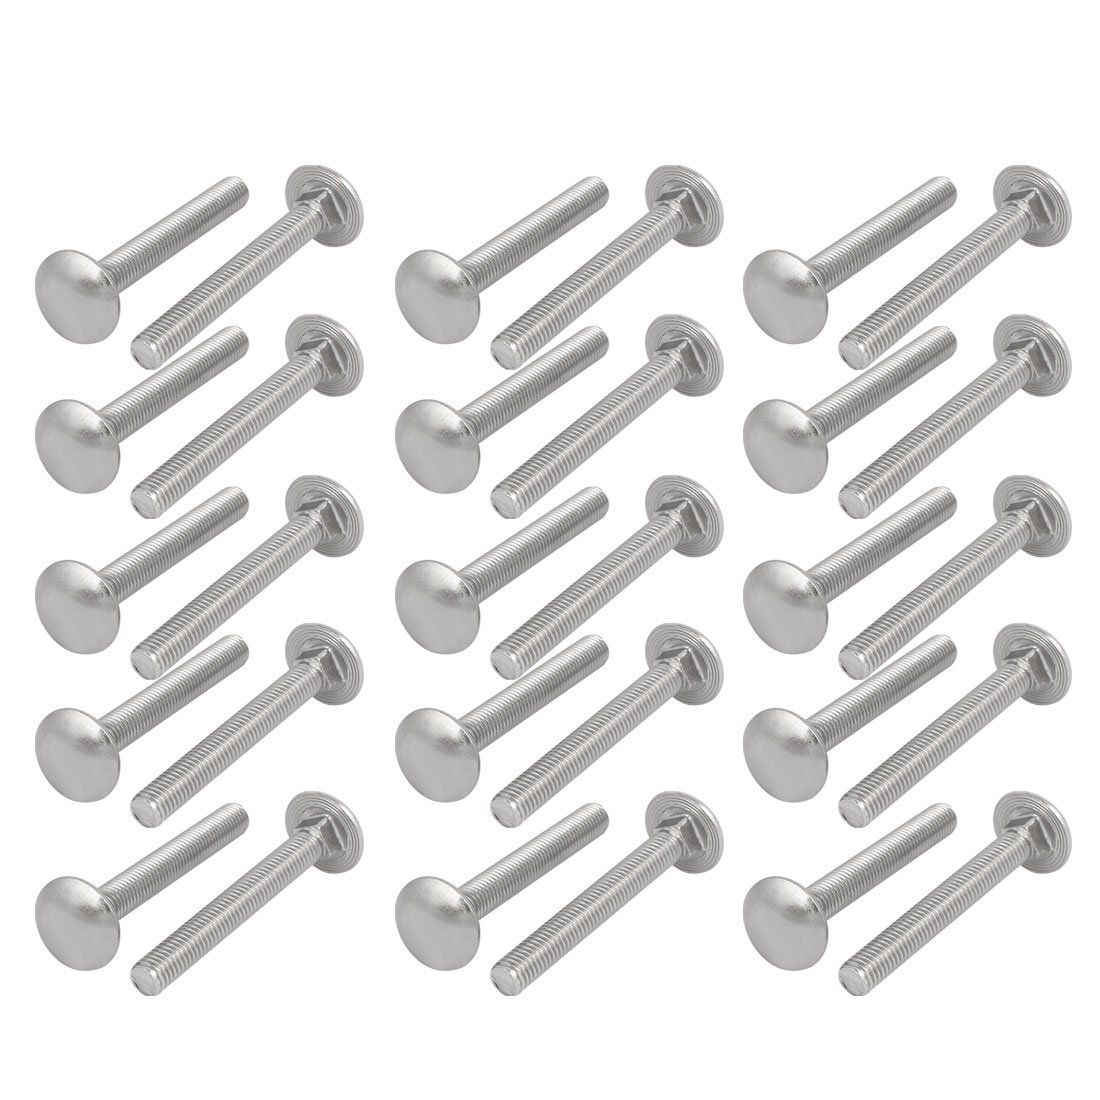 M8x65mm 304 Stainless Steel Round Cap Square Neck Trailer Carriage Bolts 30pcs